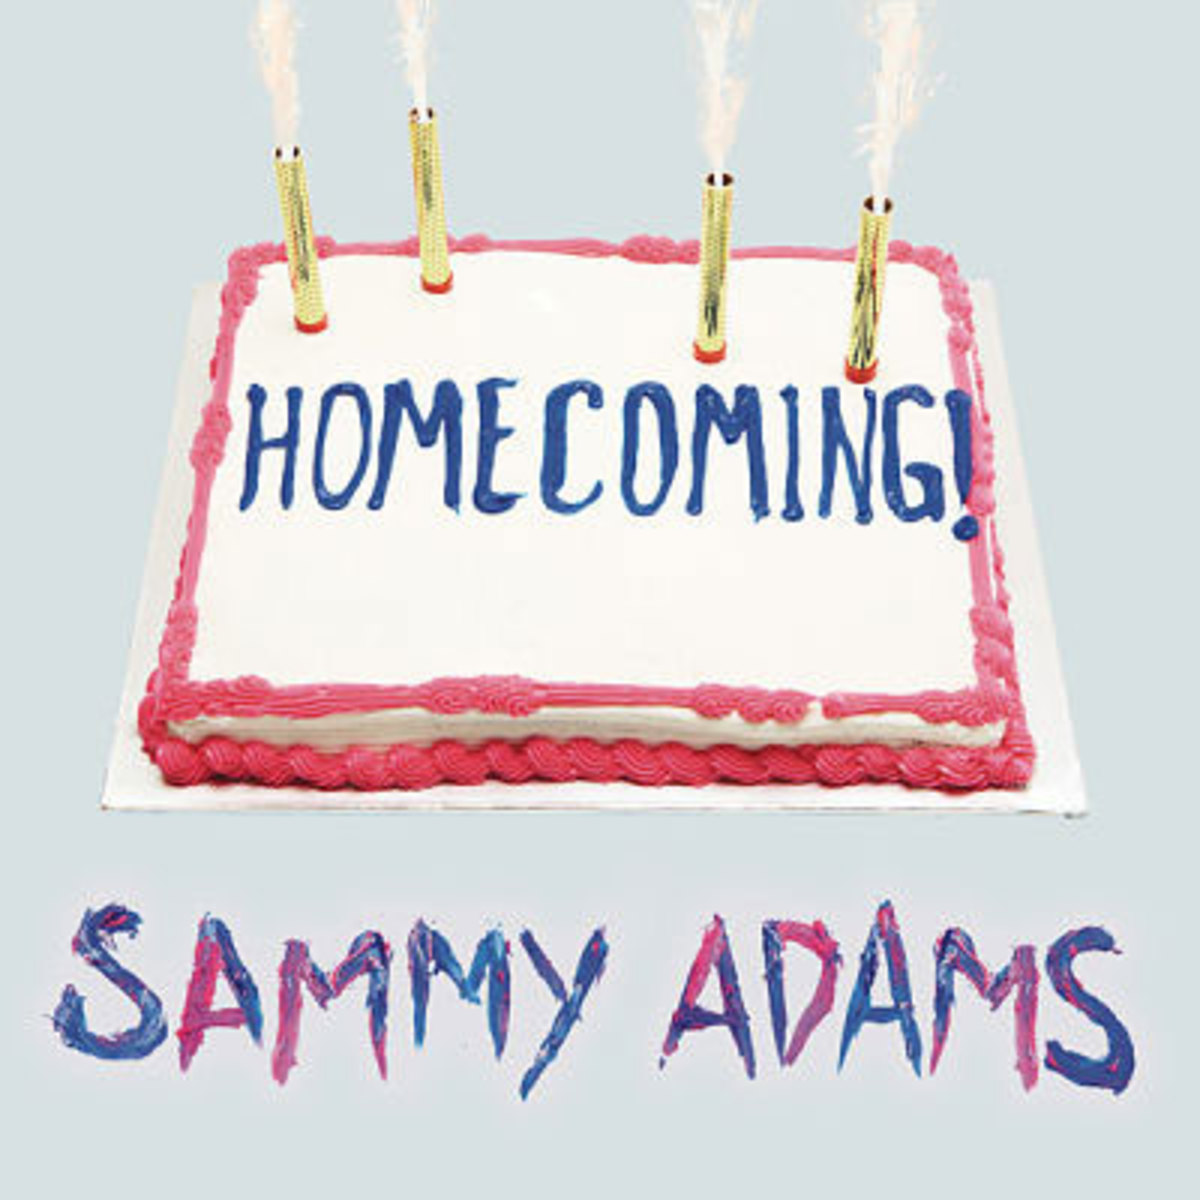 sammyadams-homecoming.jpg